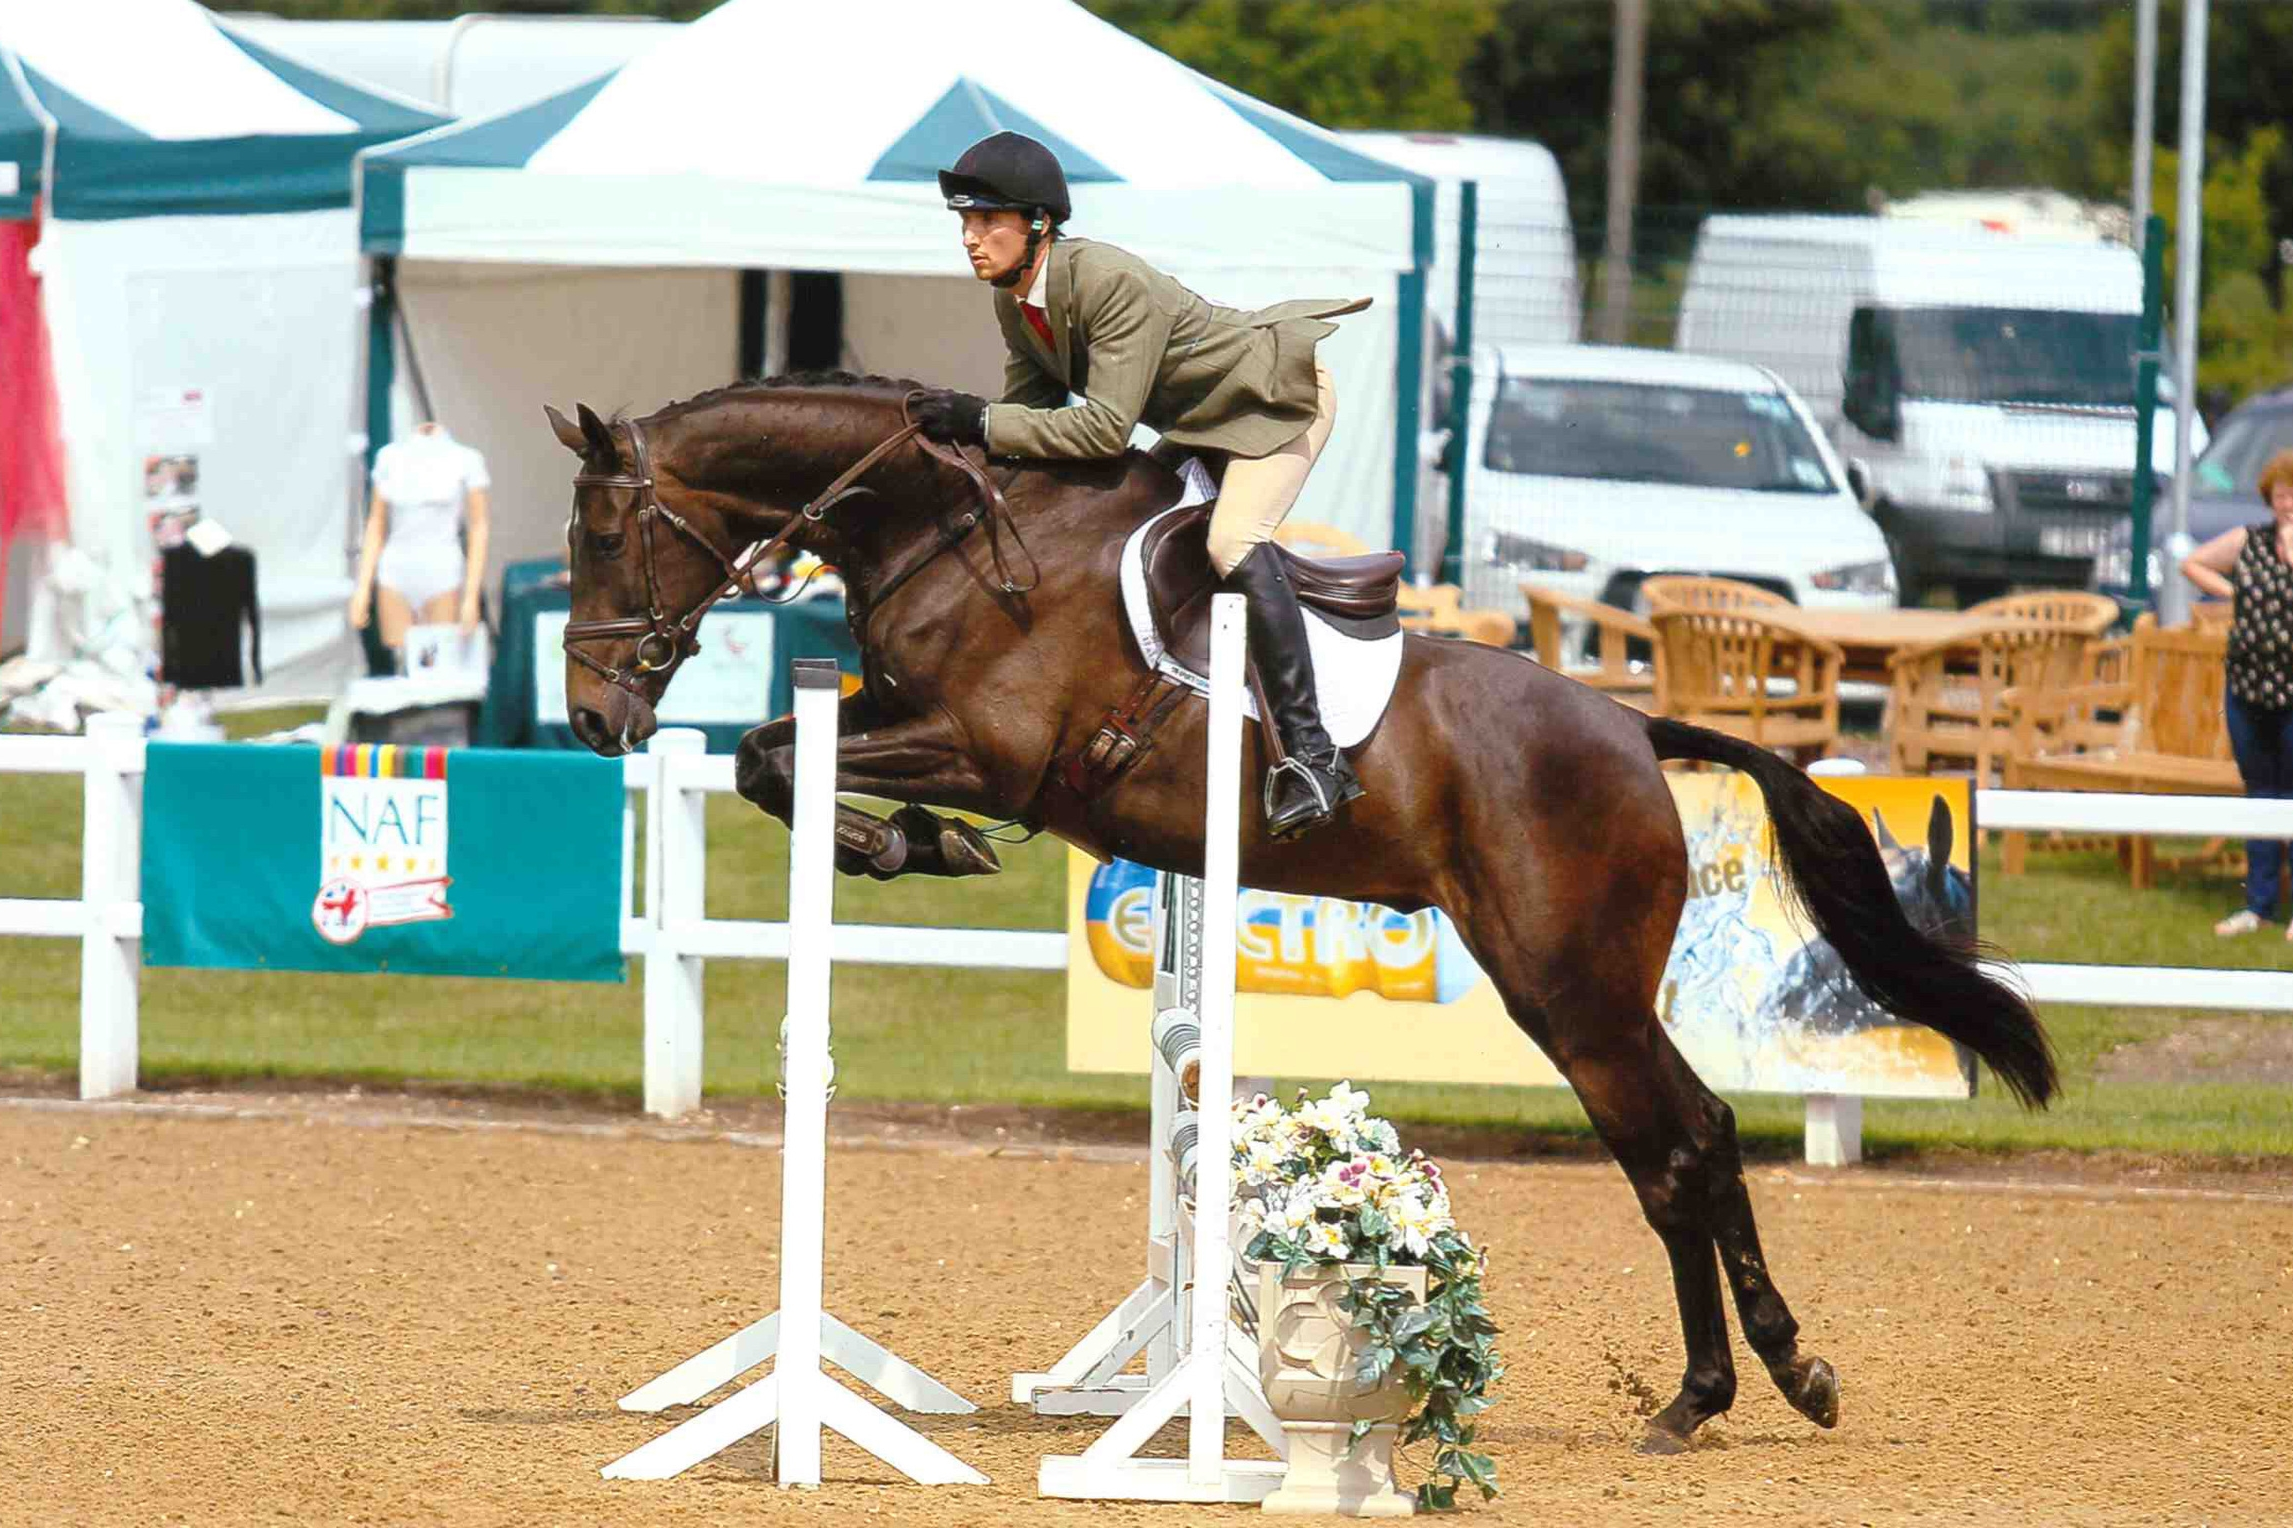 Sam and julian Podgers's Emperor Clover (max) at the byeh qualifier at hartpury - 2013